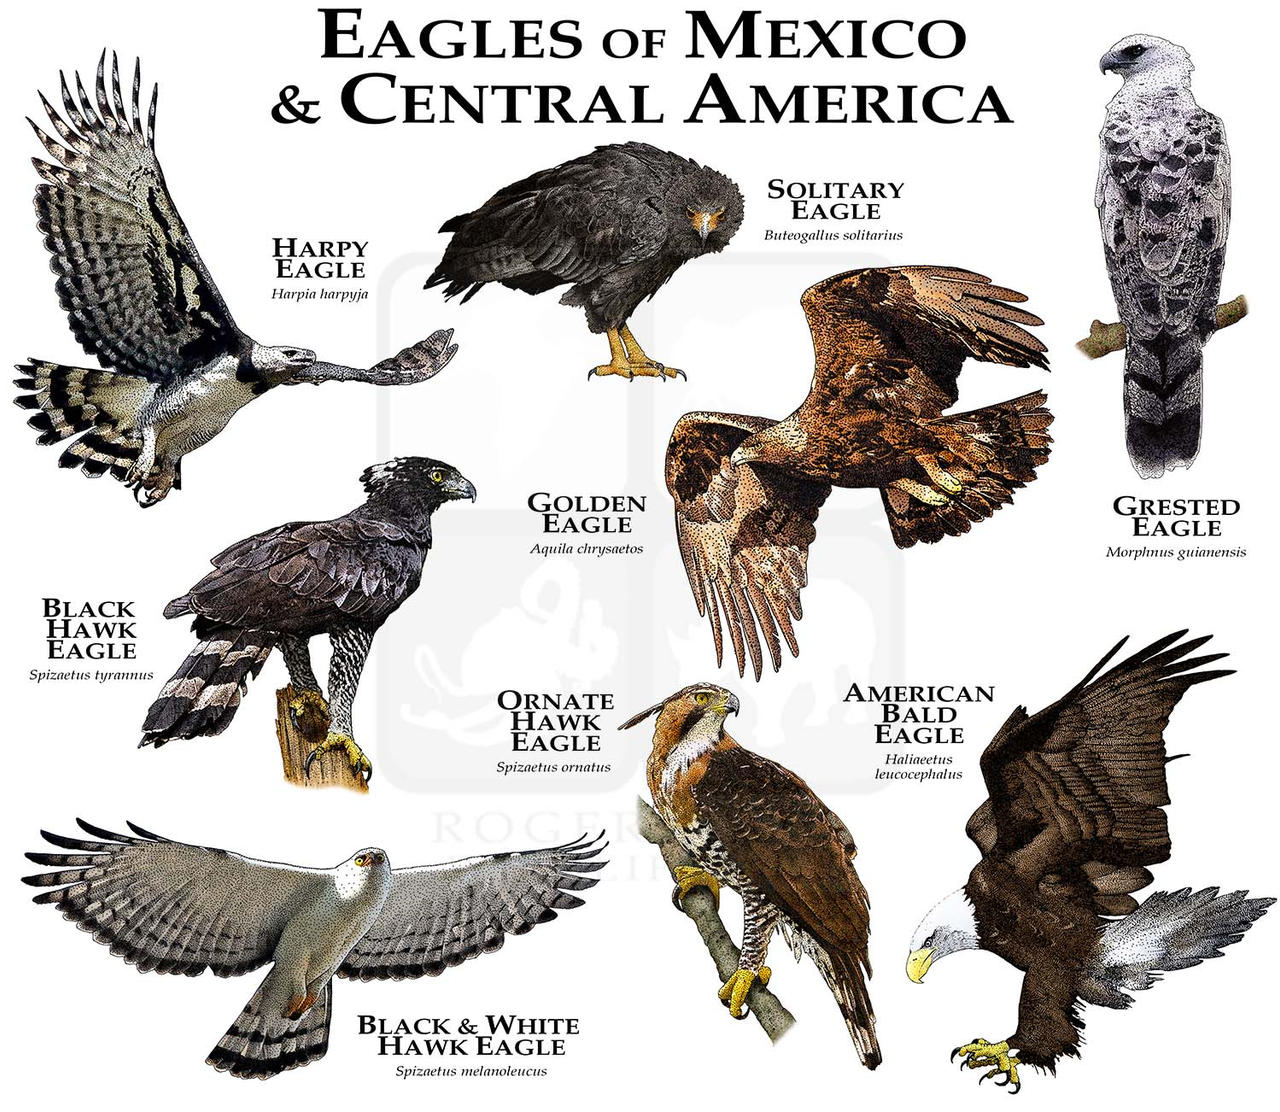 Eagles of Mexico and Central America by rogerdhall on DeviantArt